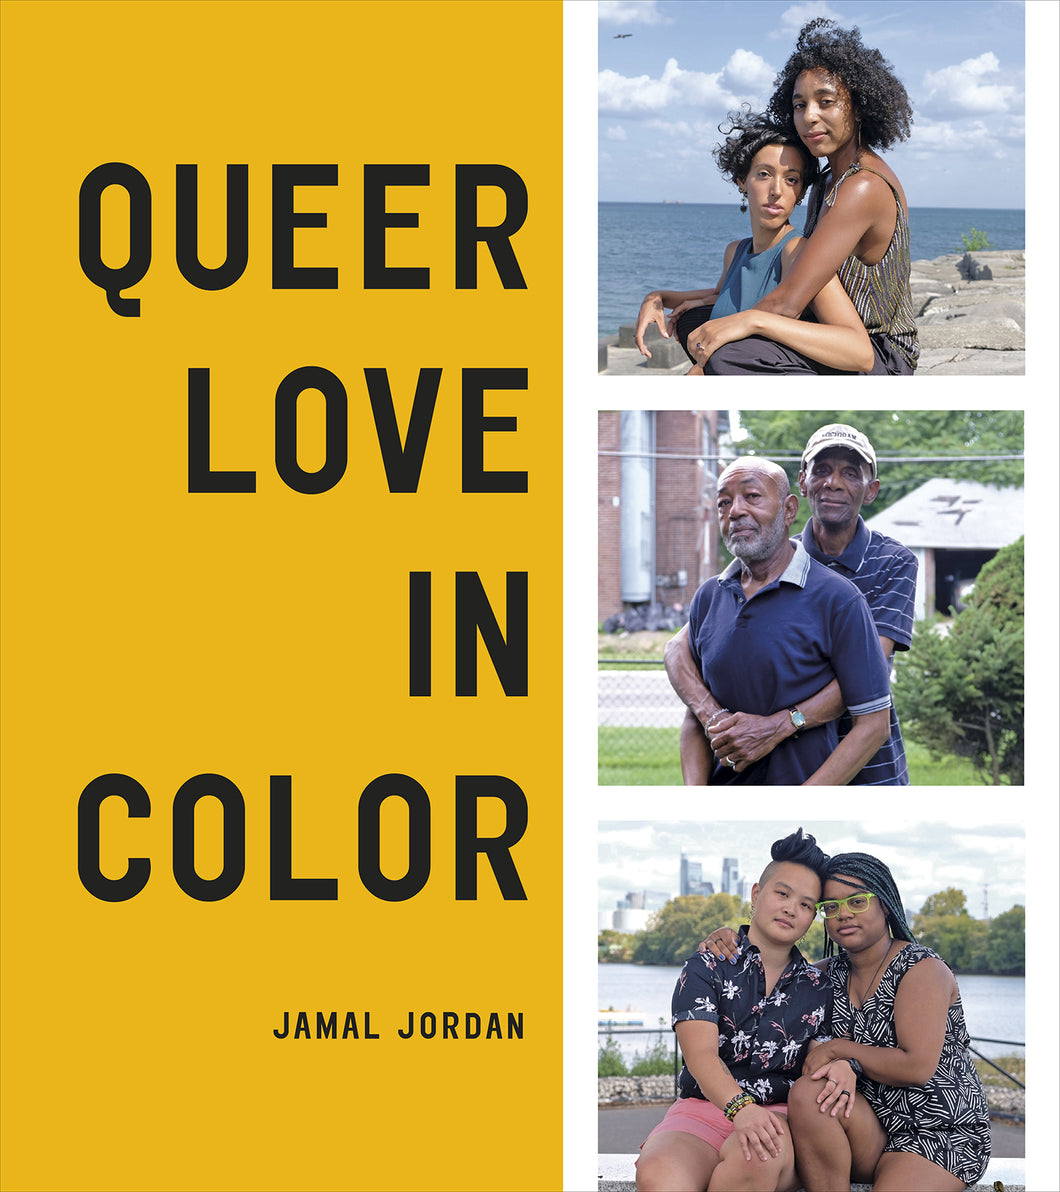 Queer Love in Color by Jamal Jordan (Pre-Order, May 4)